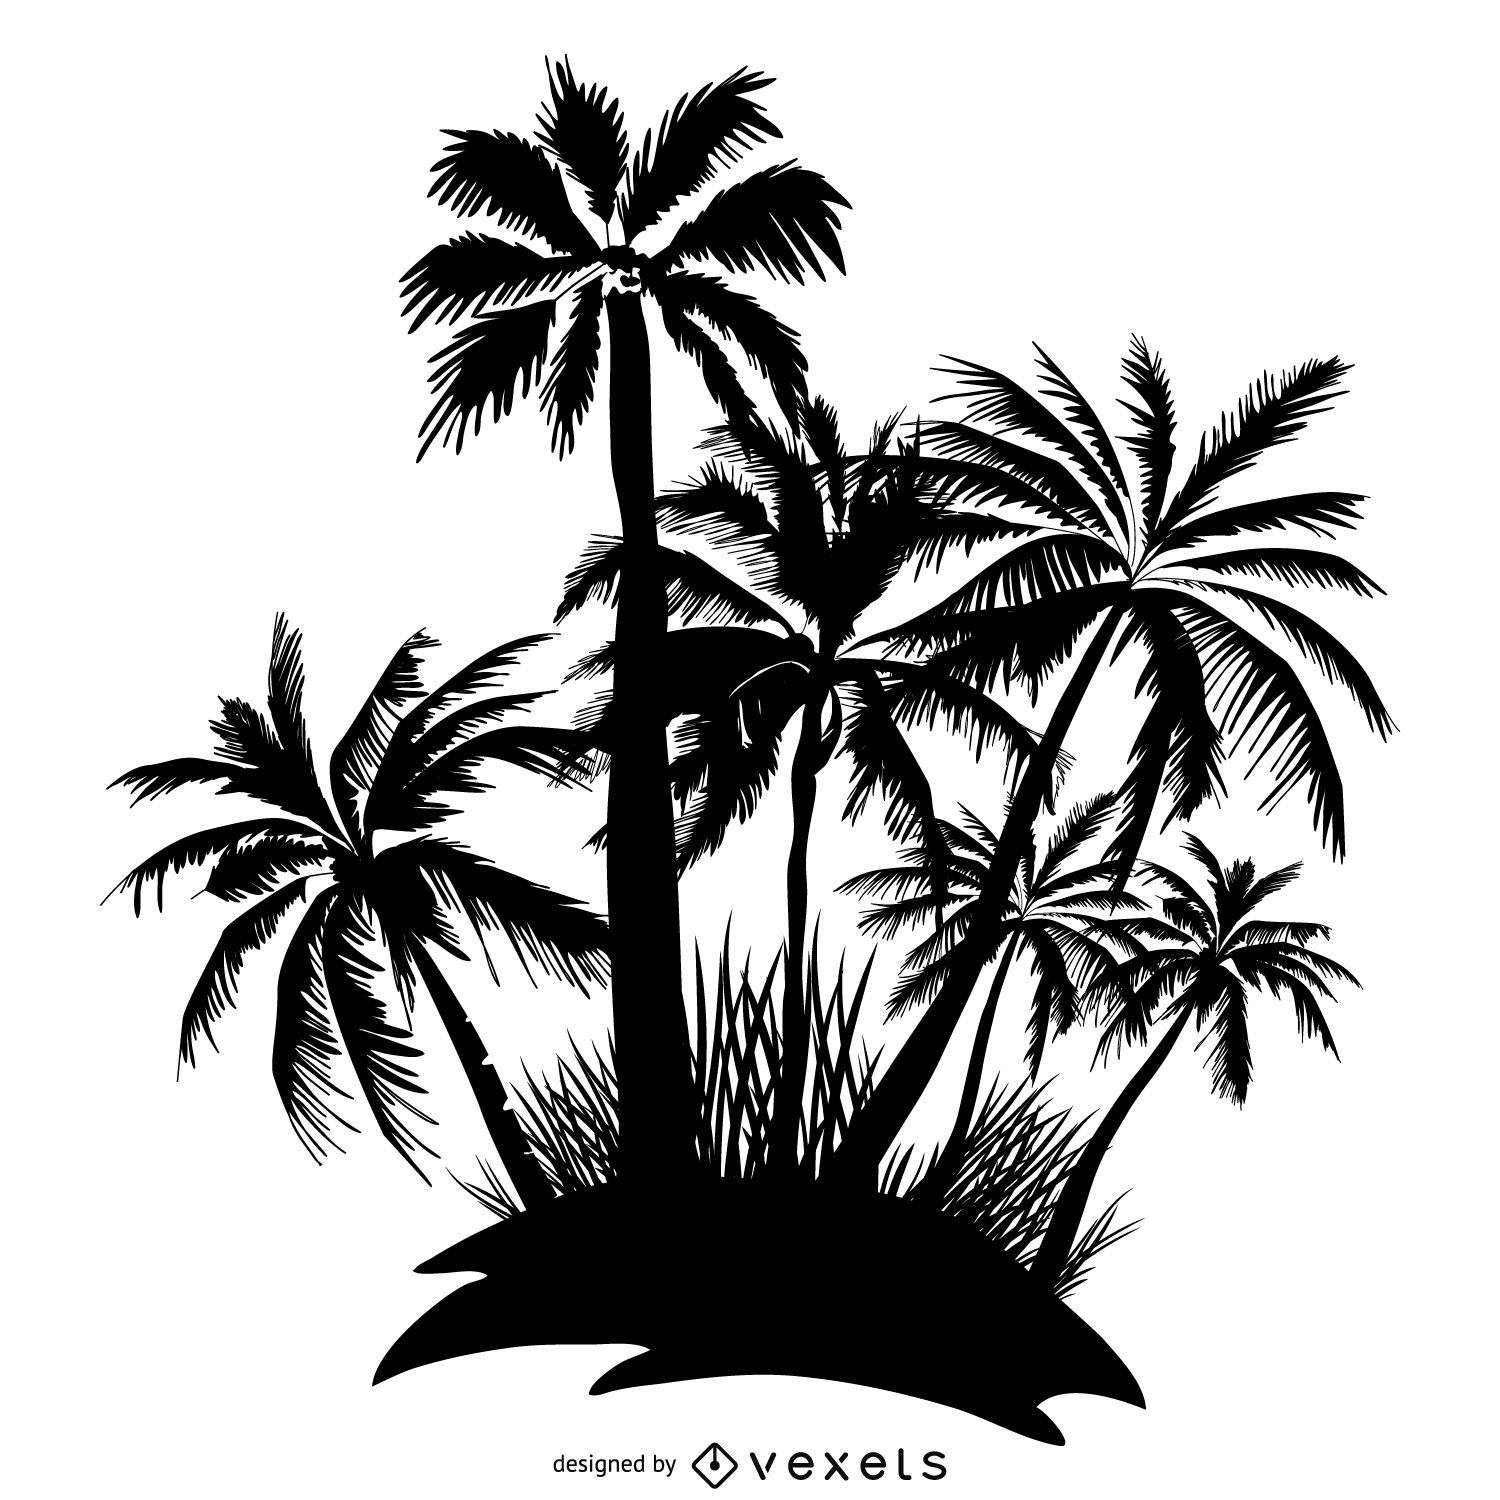 Palm trees island silhouette - Vector download